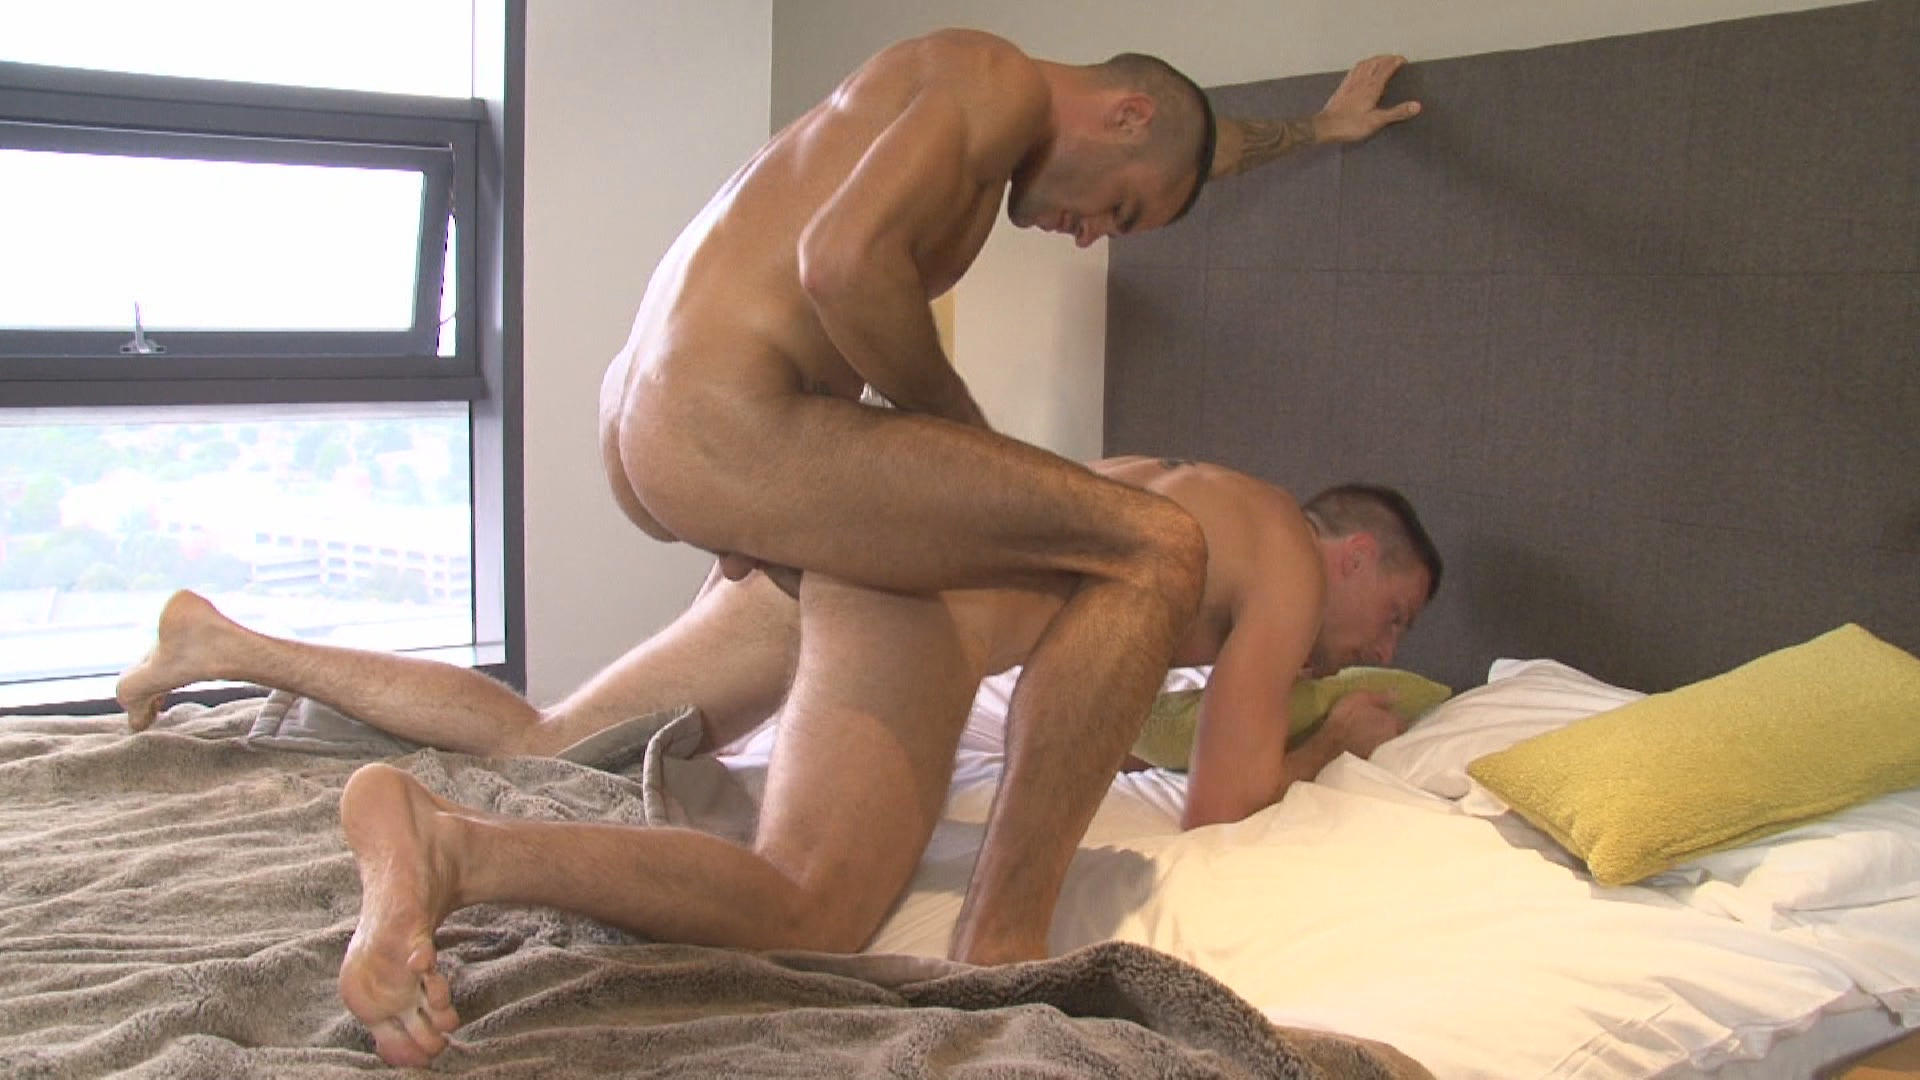 Unzipped Xvideo gay